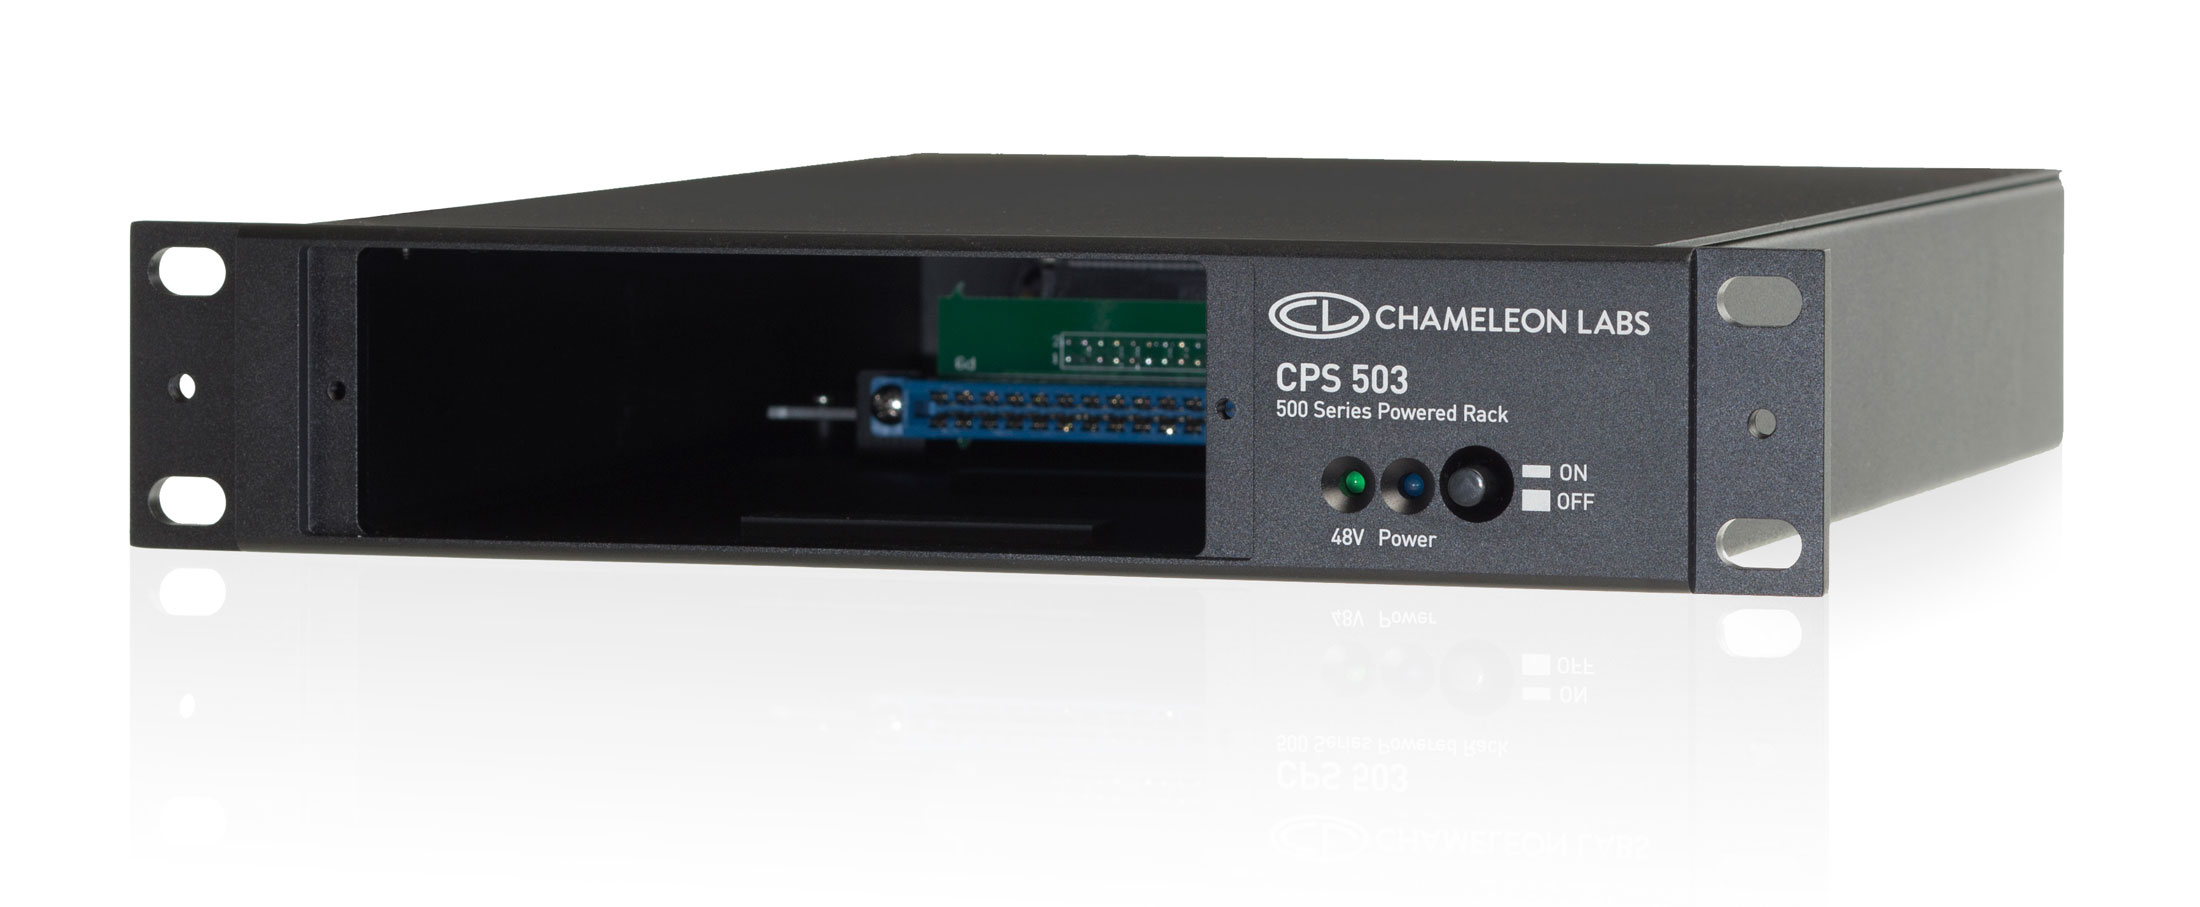 The Chameleon Labs CPS503 500-series Power System